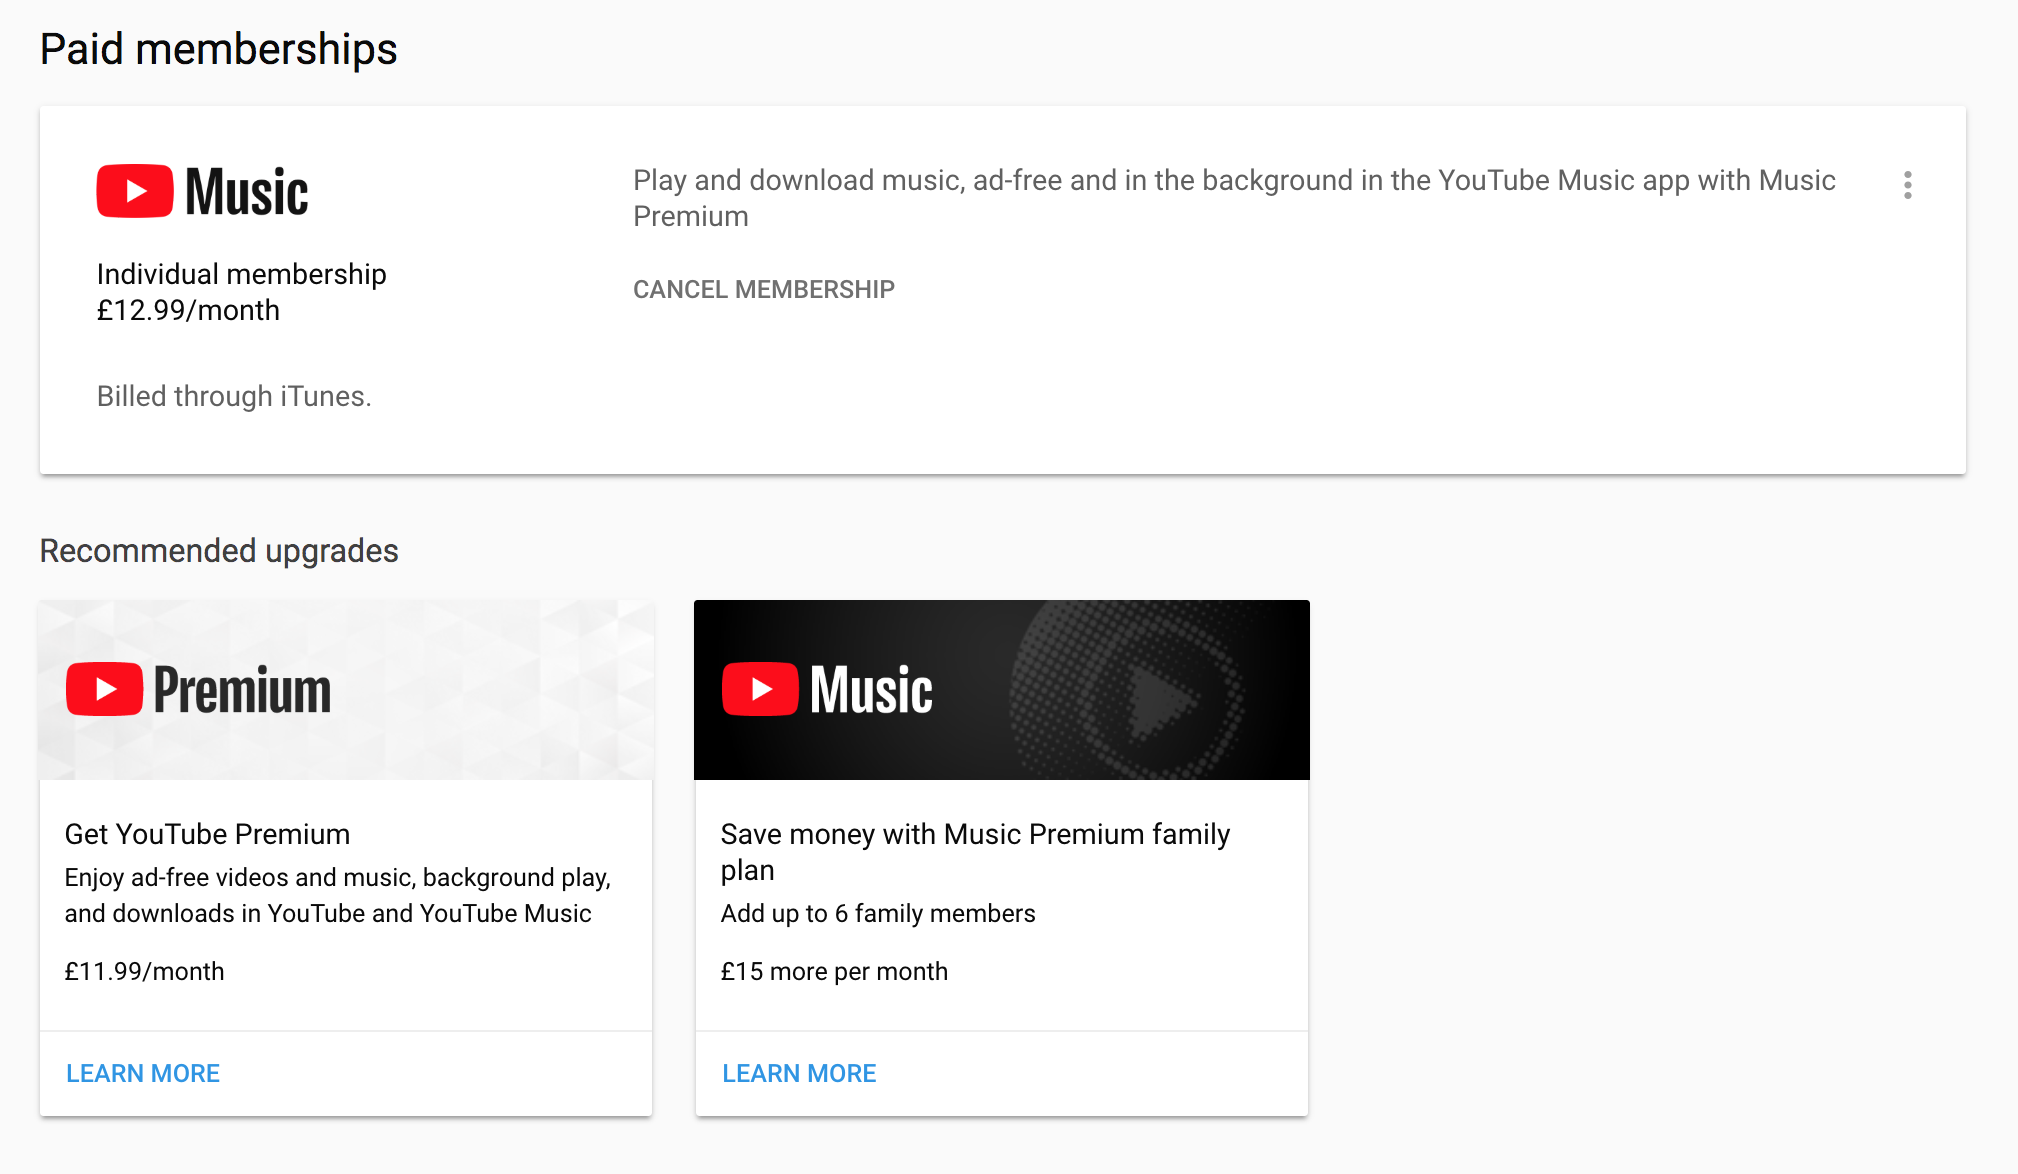 Confused? Here's the difference between YouTube Premium and YouTube Music Premium